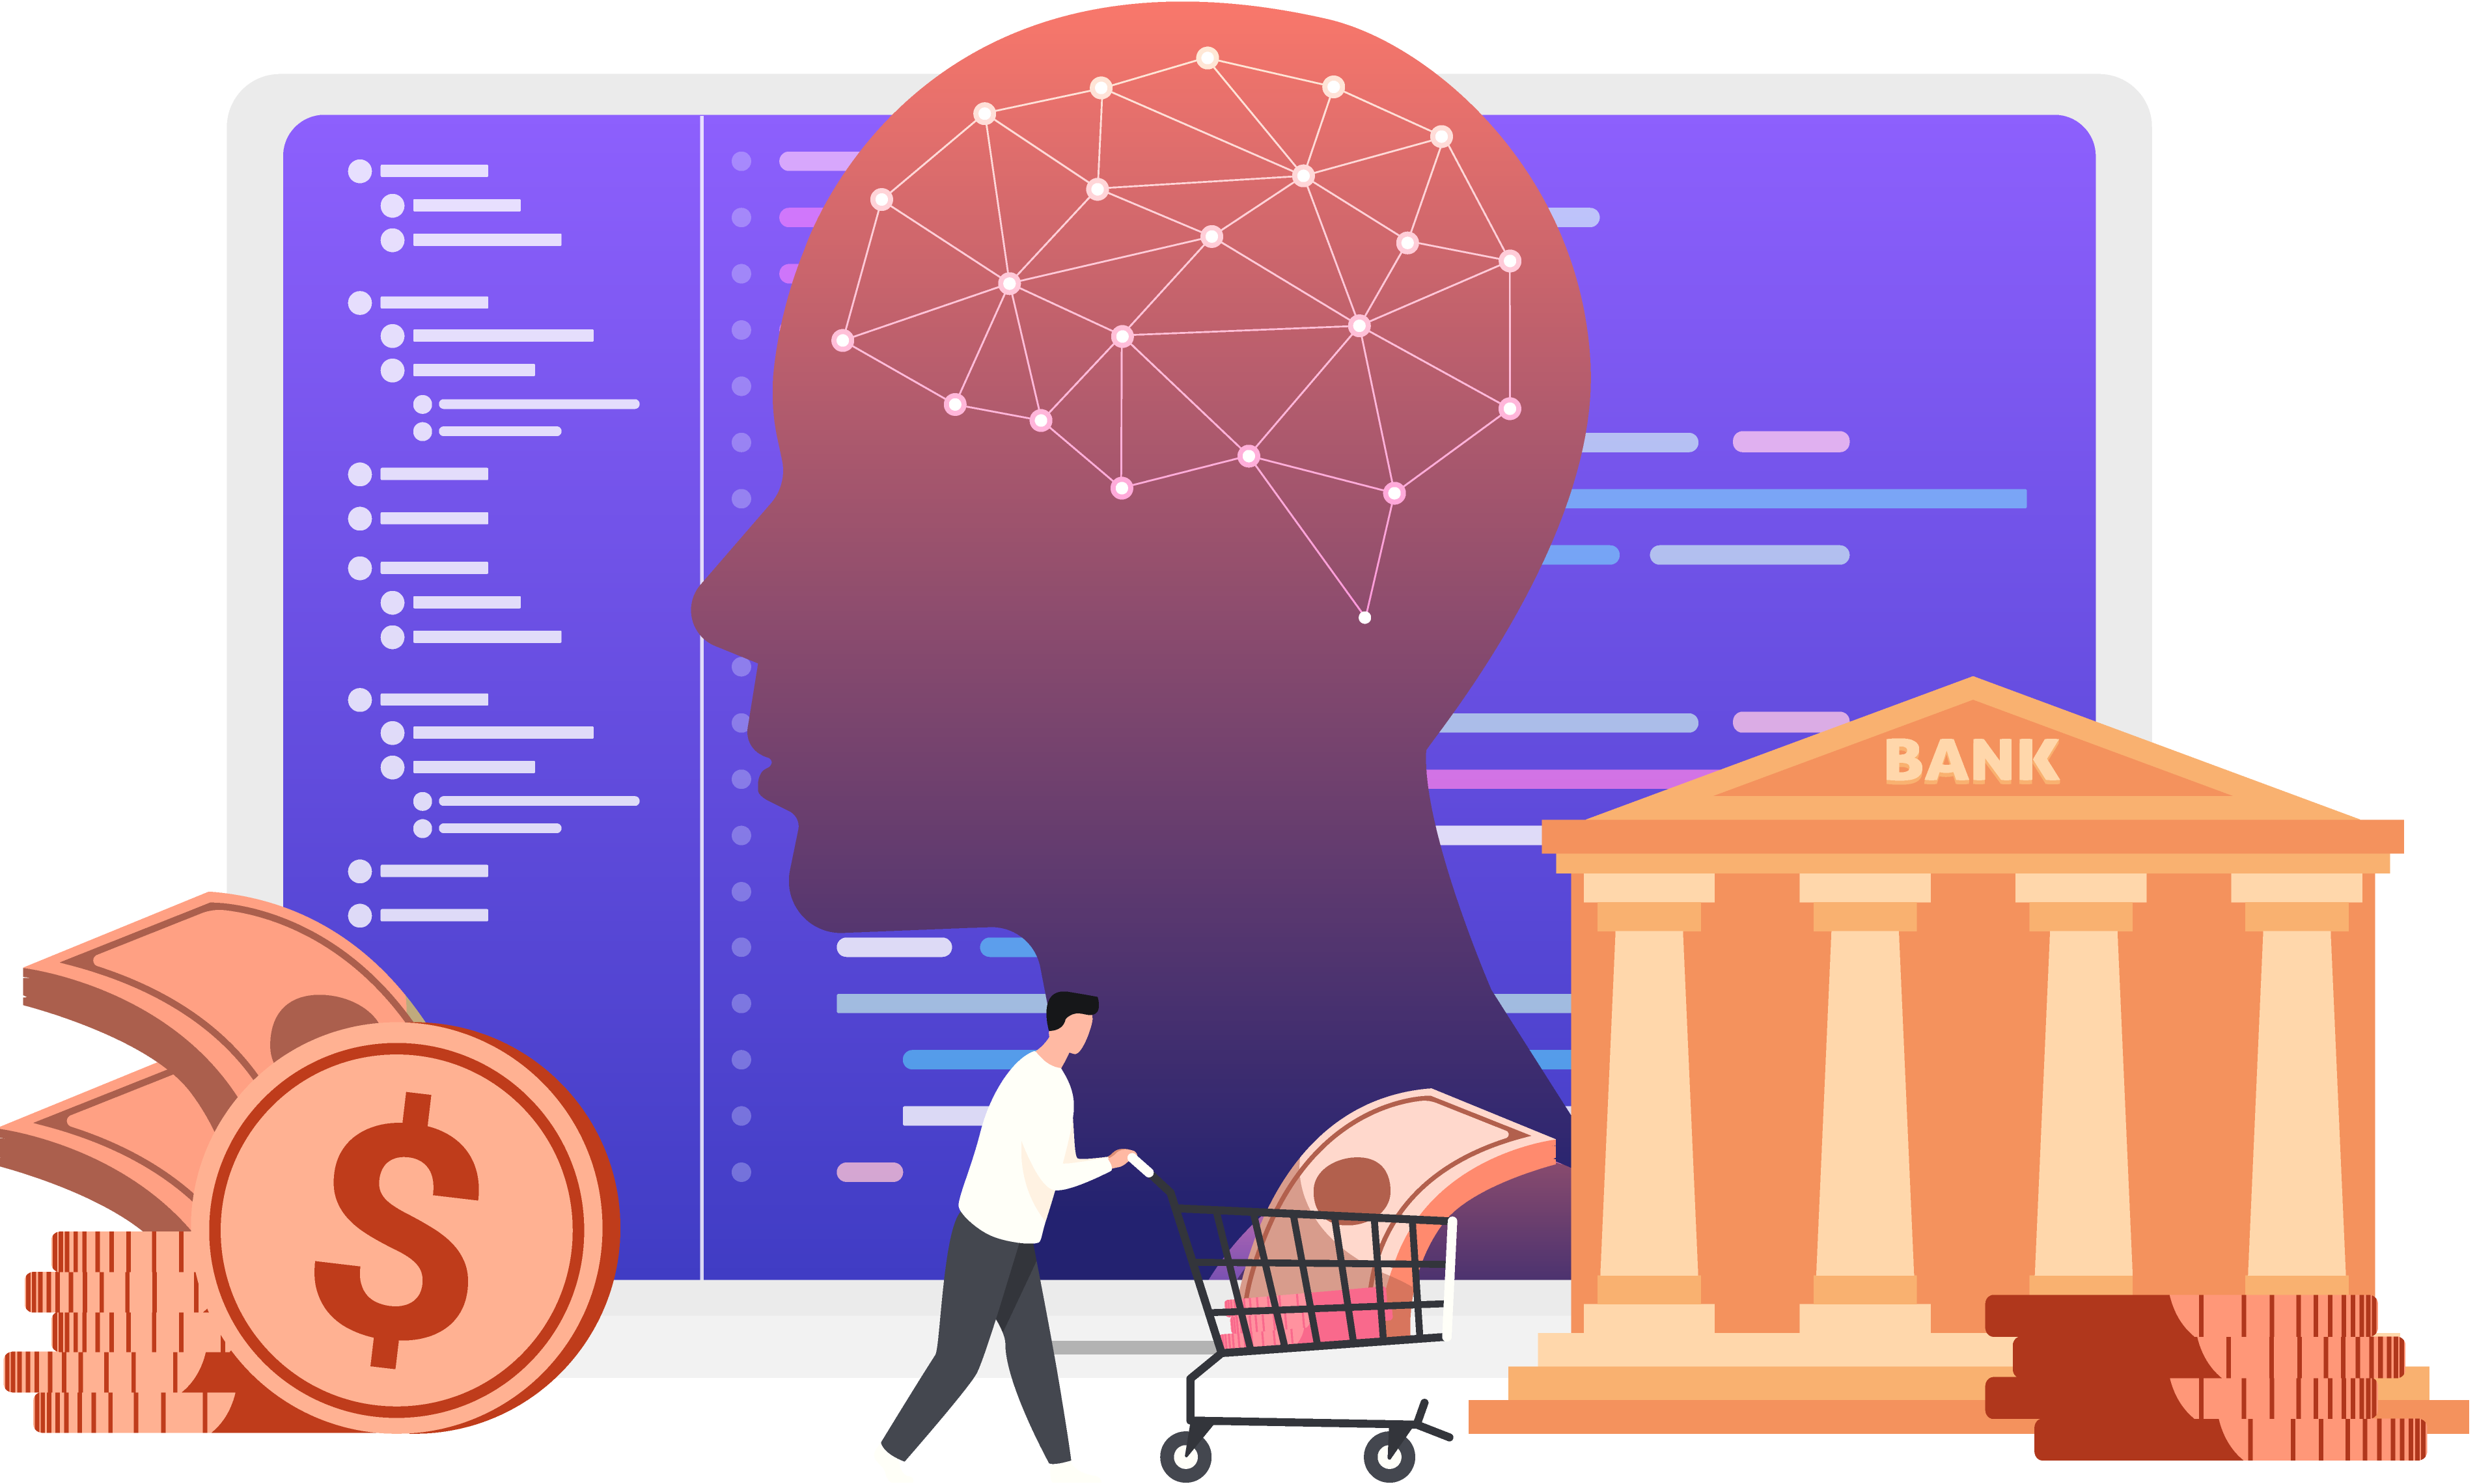 Machine Learning in Banking